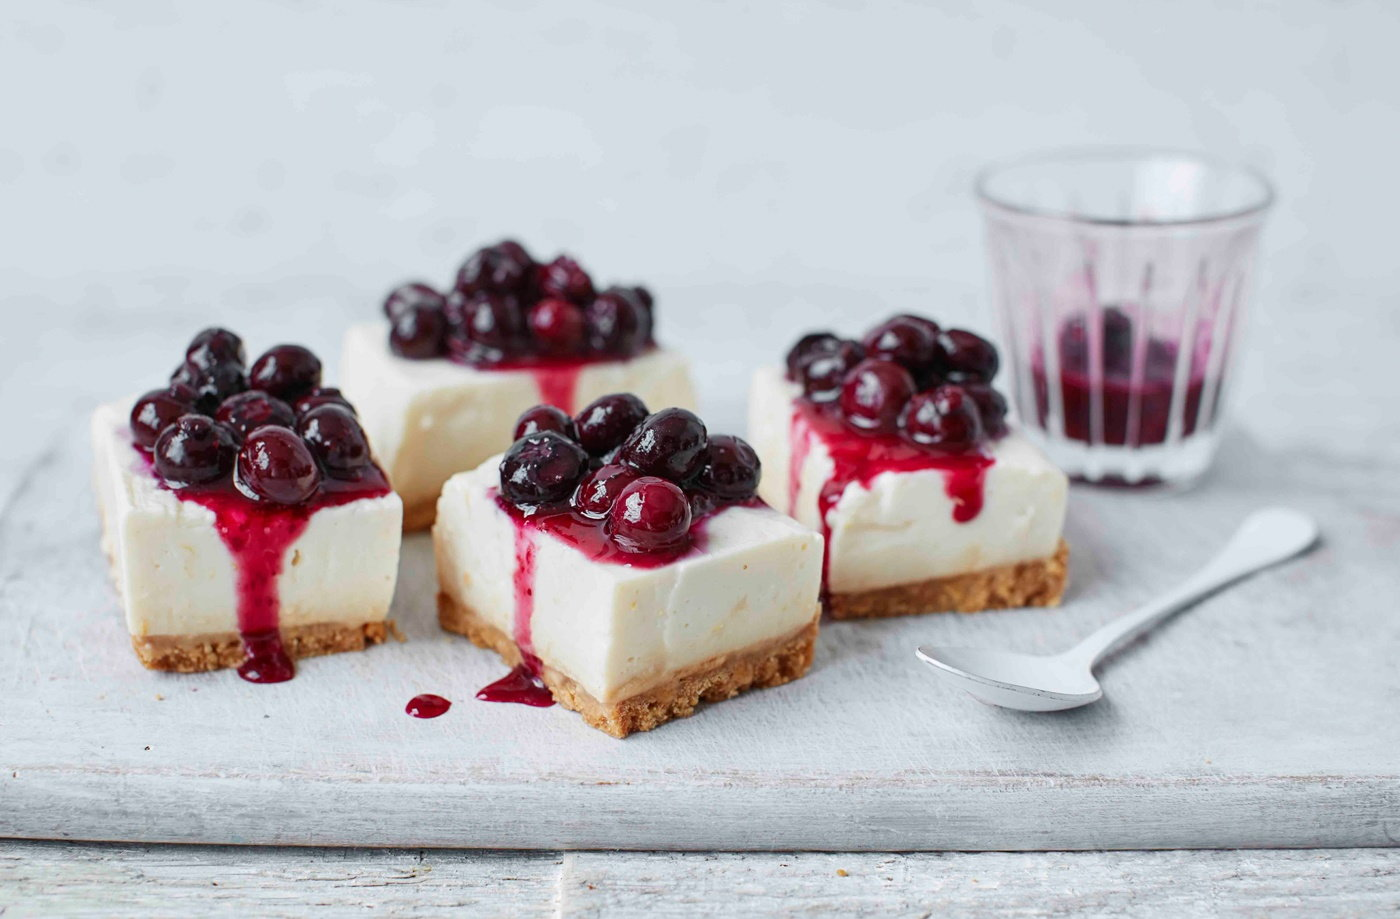 Dairy-free cheesecake-style bars recipe